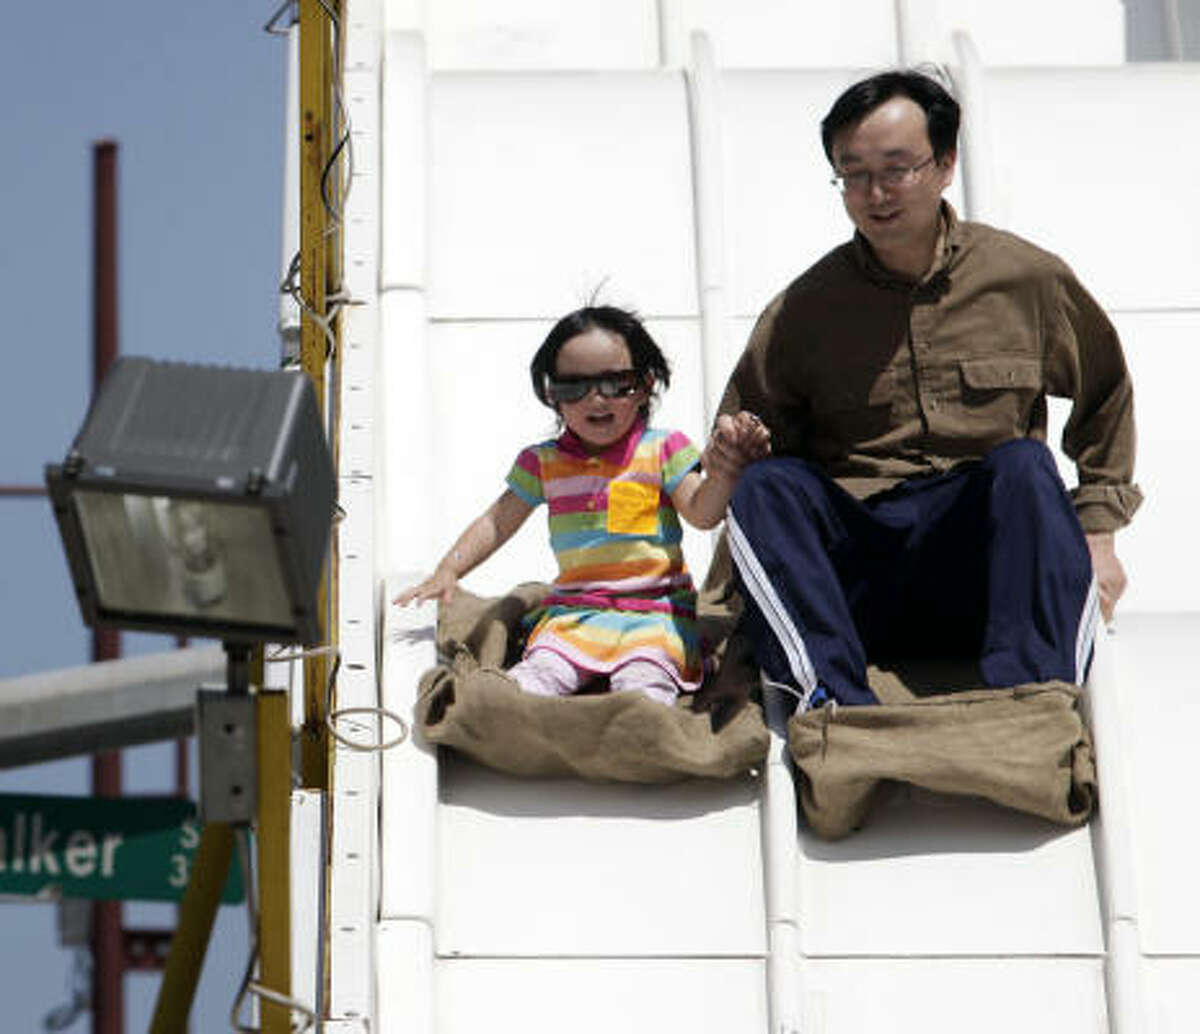 Xiaogang Han and his 2-year-old daughter, Missy, slide down a slide during the Houston Children's Festival in downtown Houston, Texas.